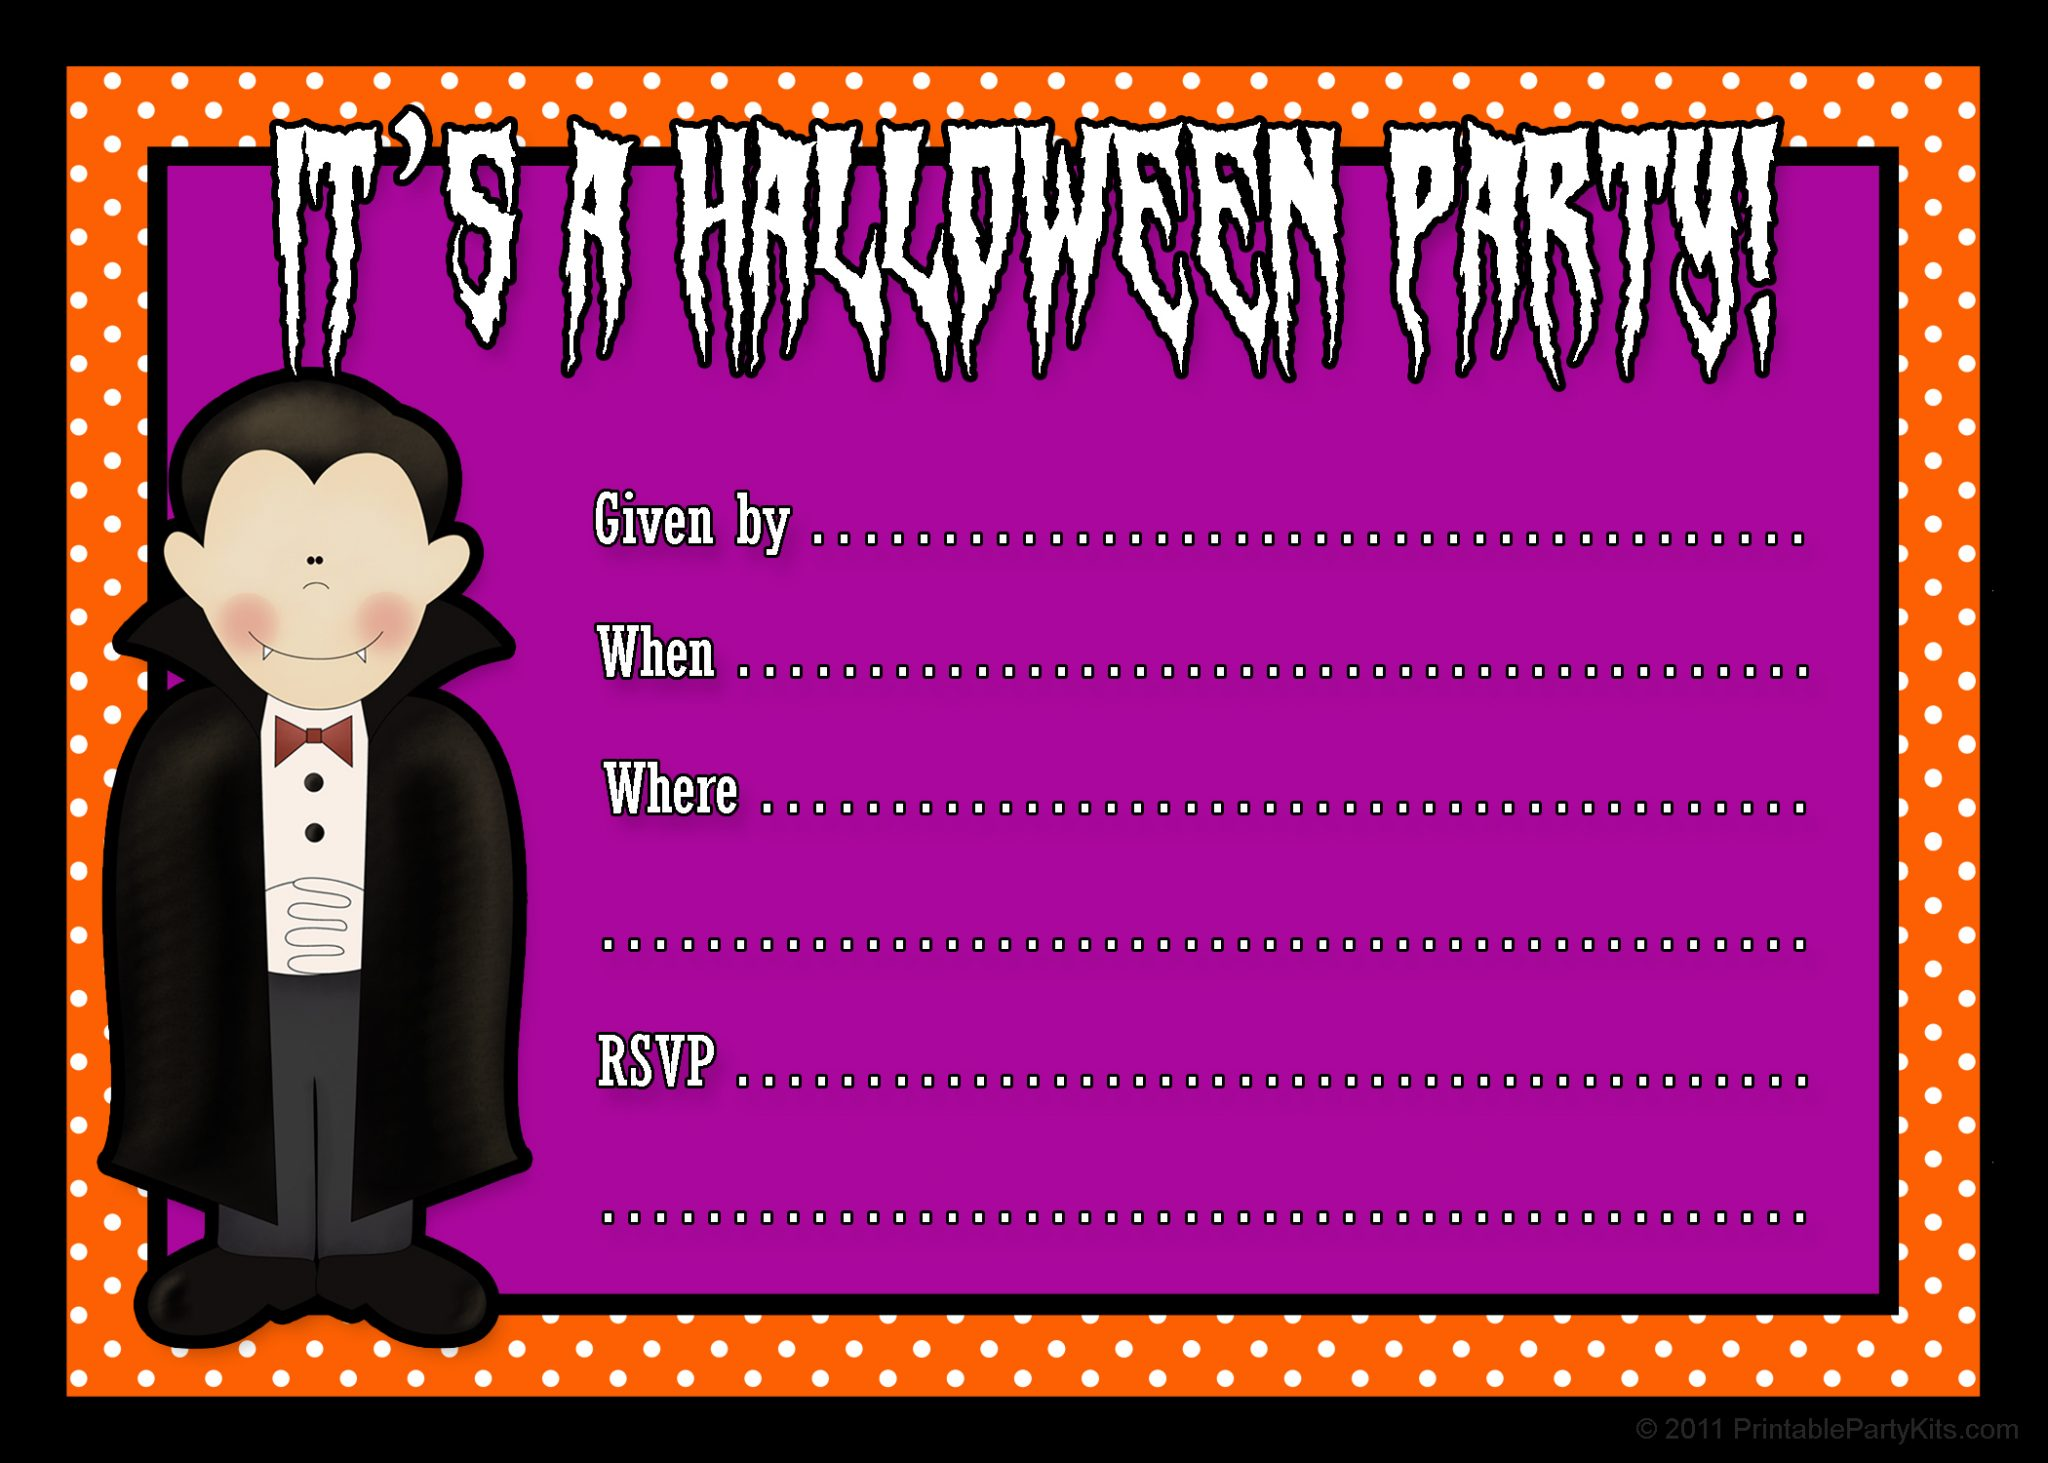 Halloween Costume Party Invitations is one of our best ideas you might choose for invitation design